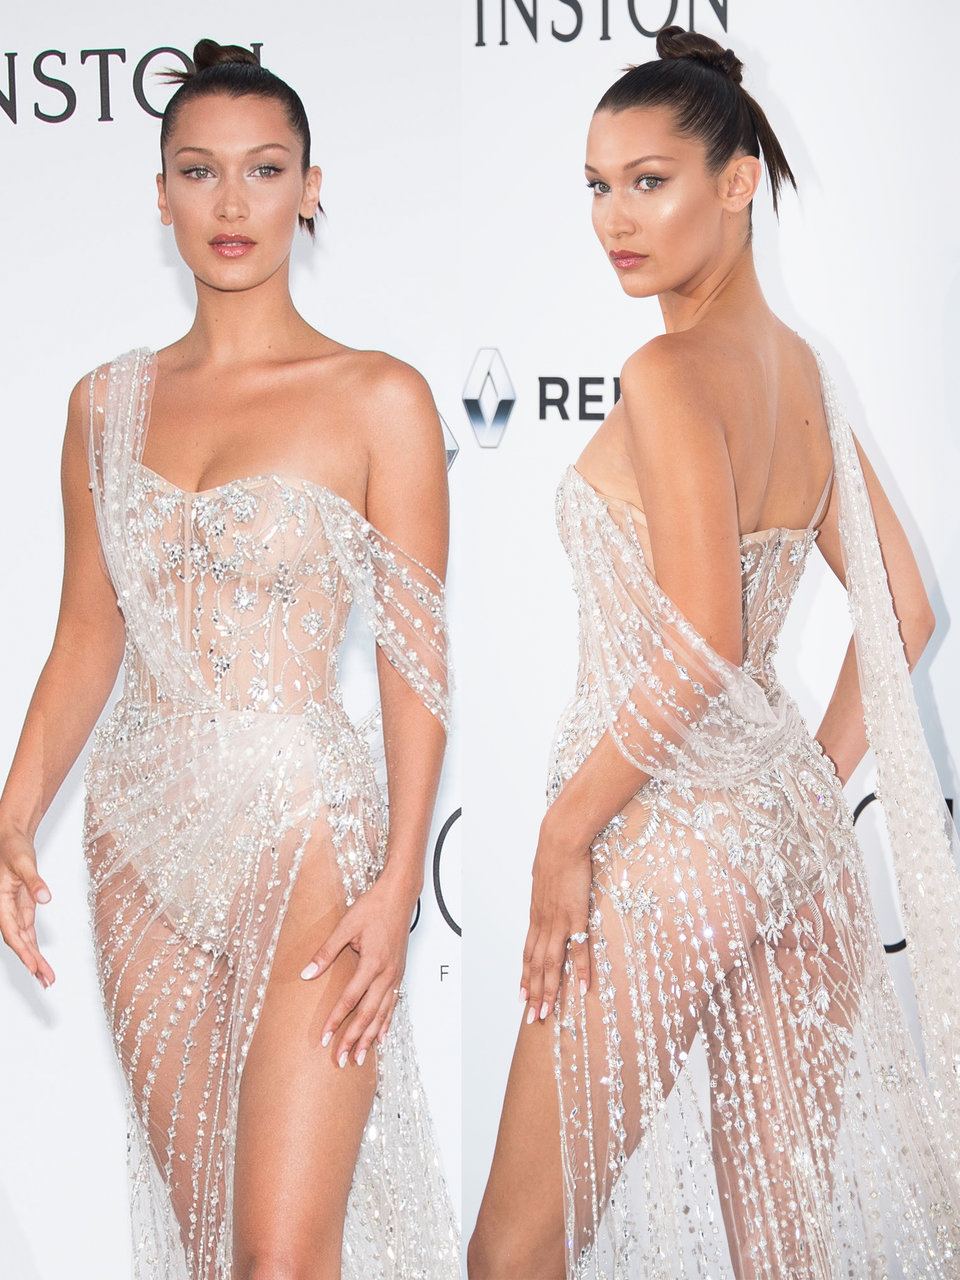 bella hadid turned heads at the 2017 amfar charity gala during the cannes international film festival in this sheer crystal gown